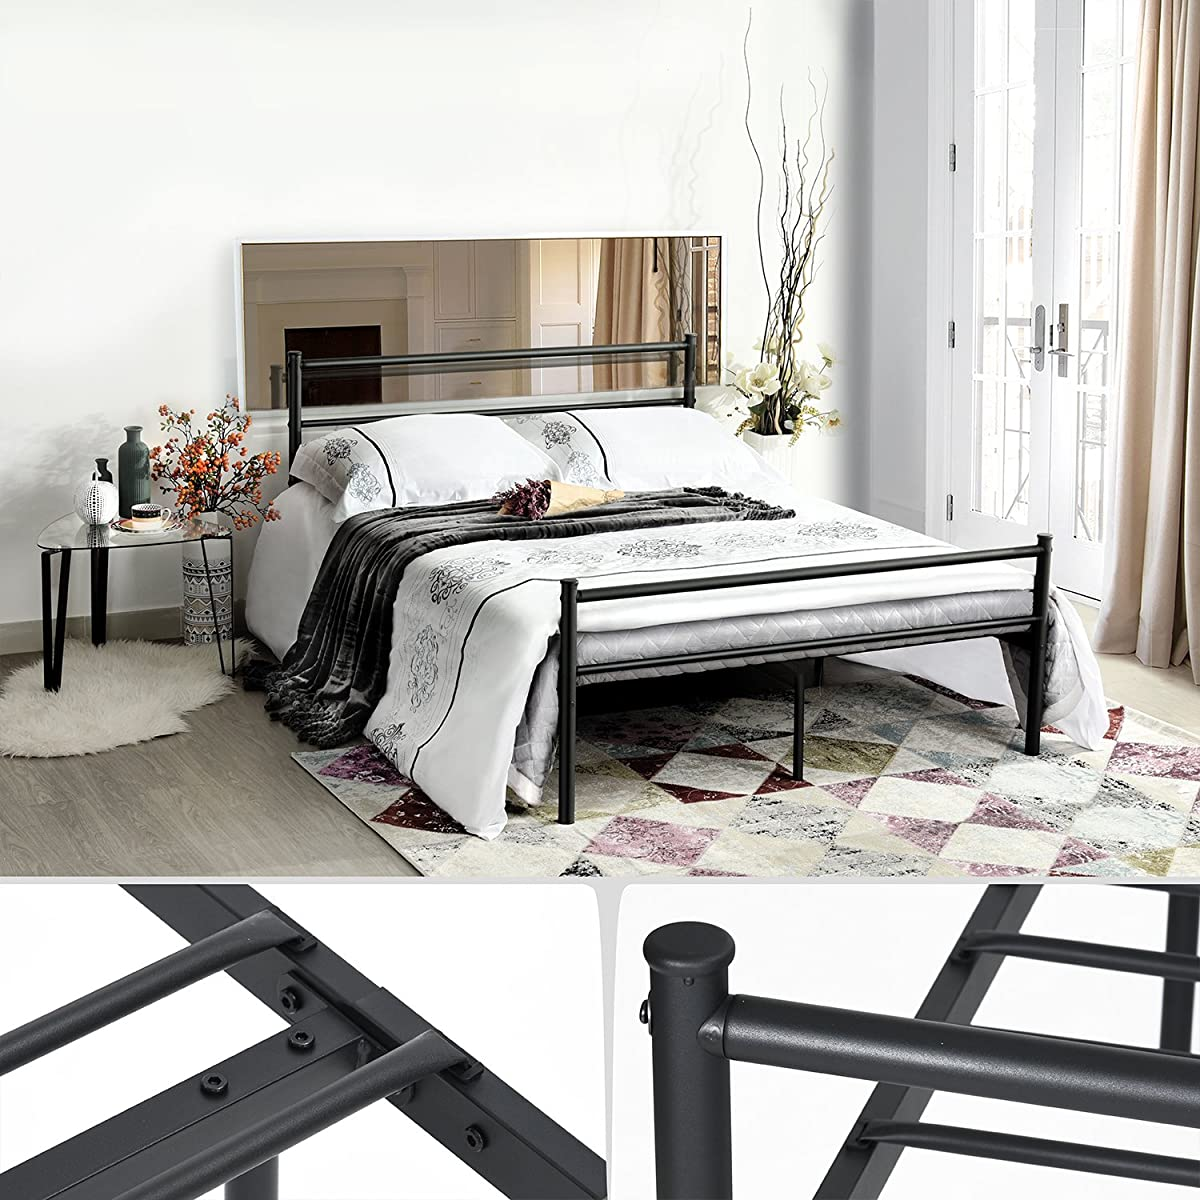 Metal Bed Frame Full Size, GreenForest Two Headboards 10 Legs Mattress Foundation Black Platform Bed Frame Box Spring Replacement for Boys Kids Adult B